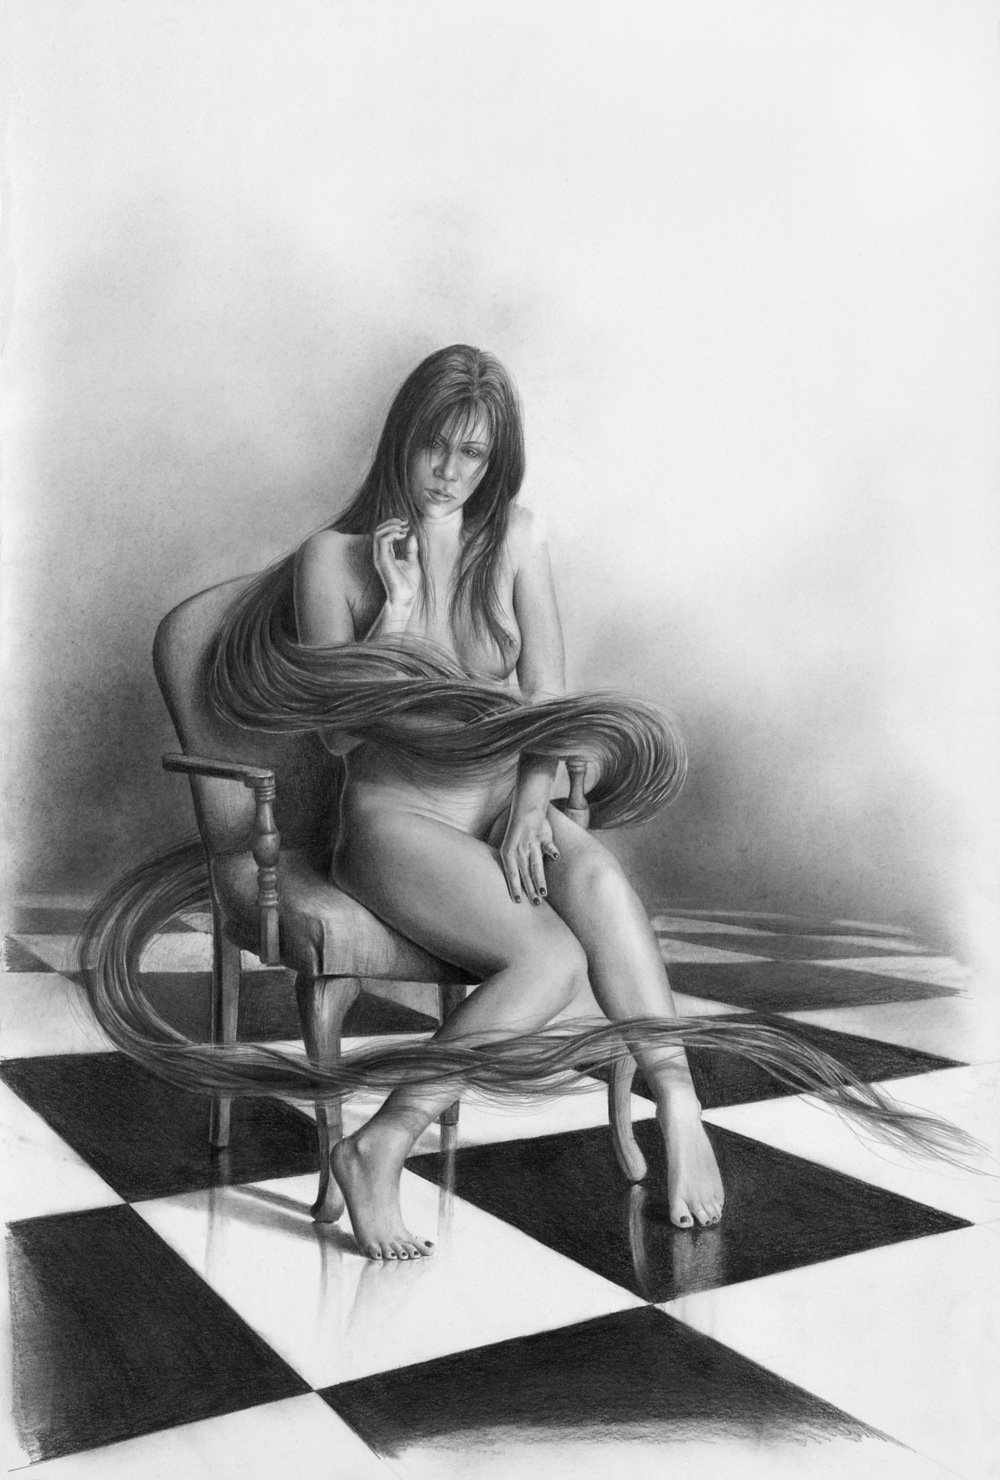 choosing your strength-bill-higginson-artist-graphite-drawing-realism-black-and-white